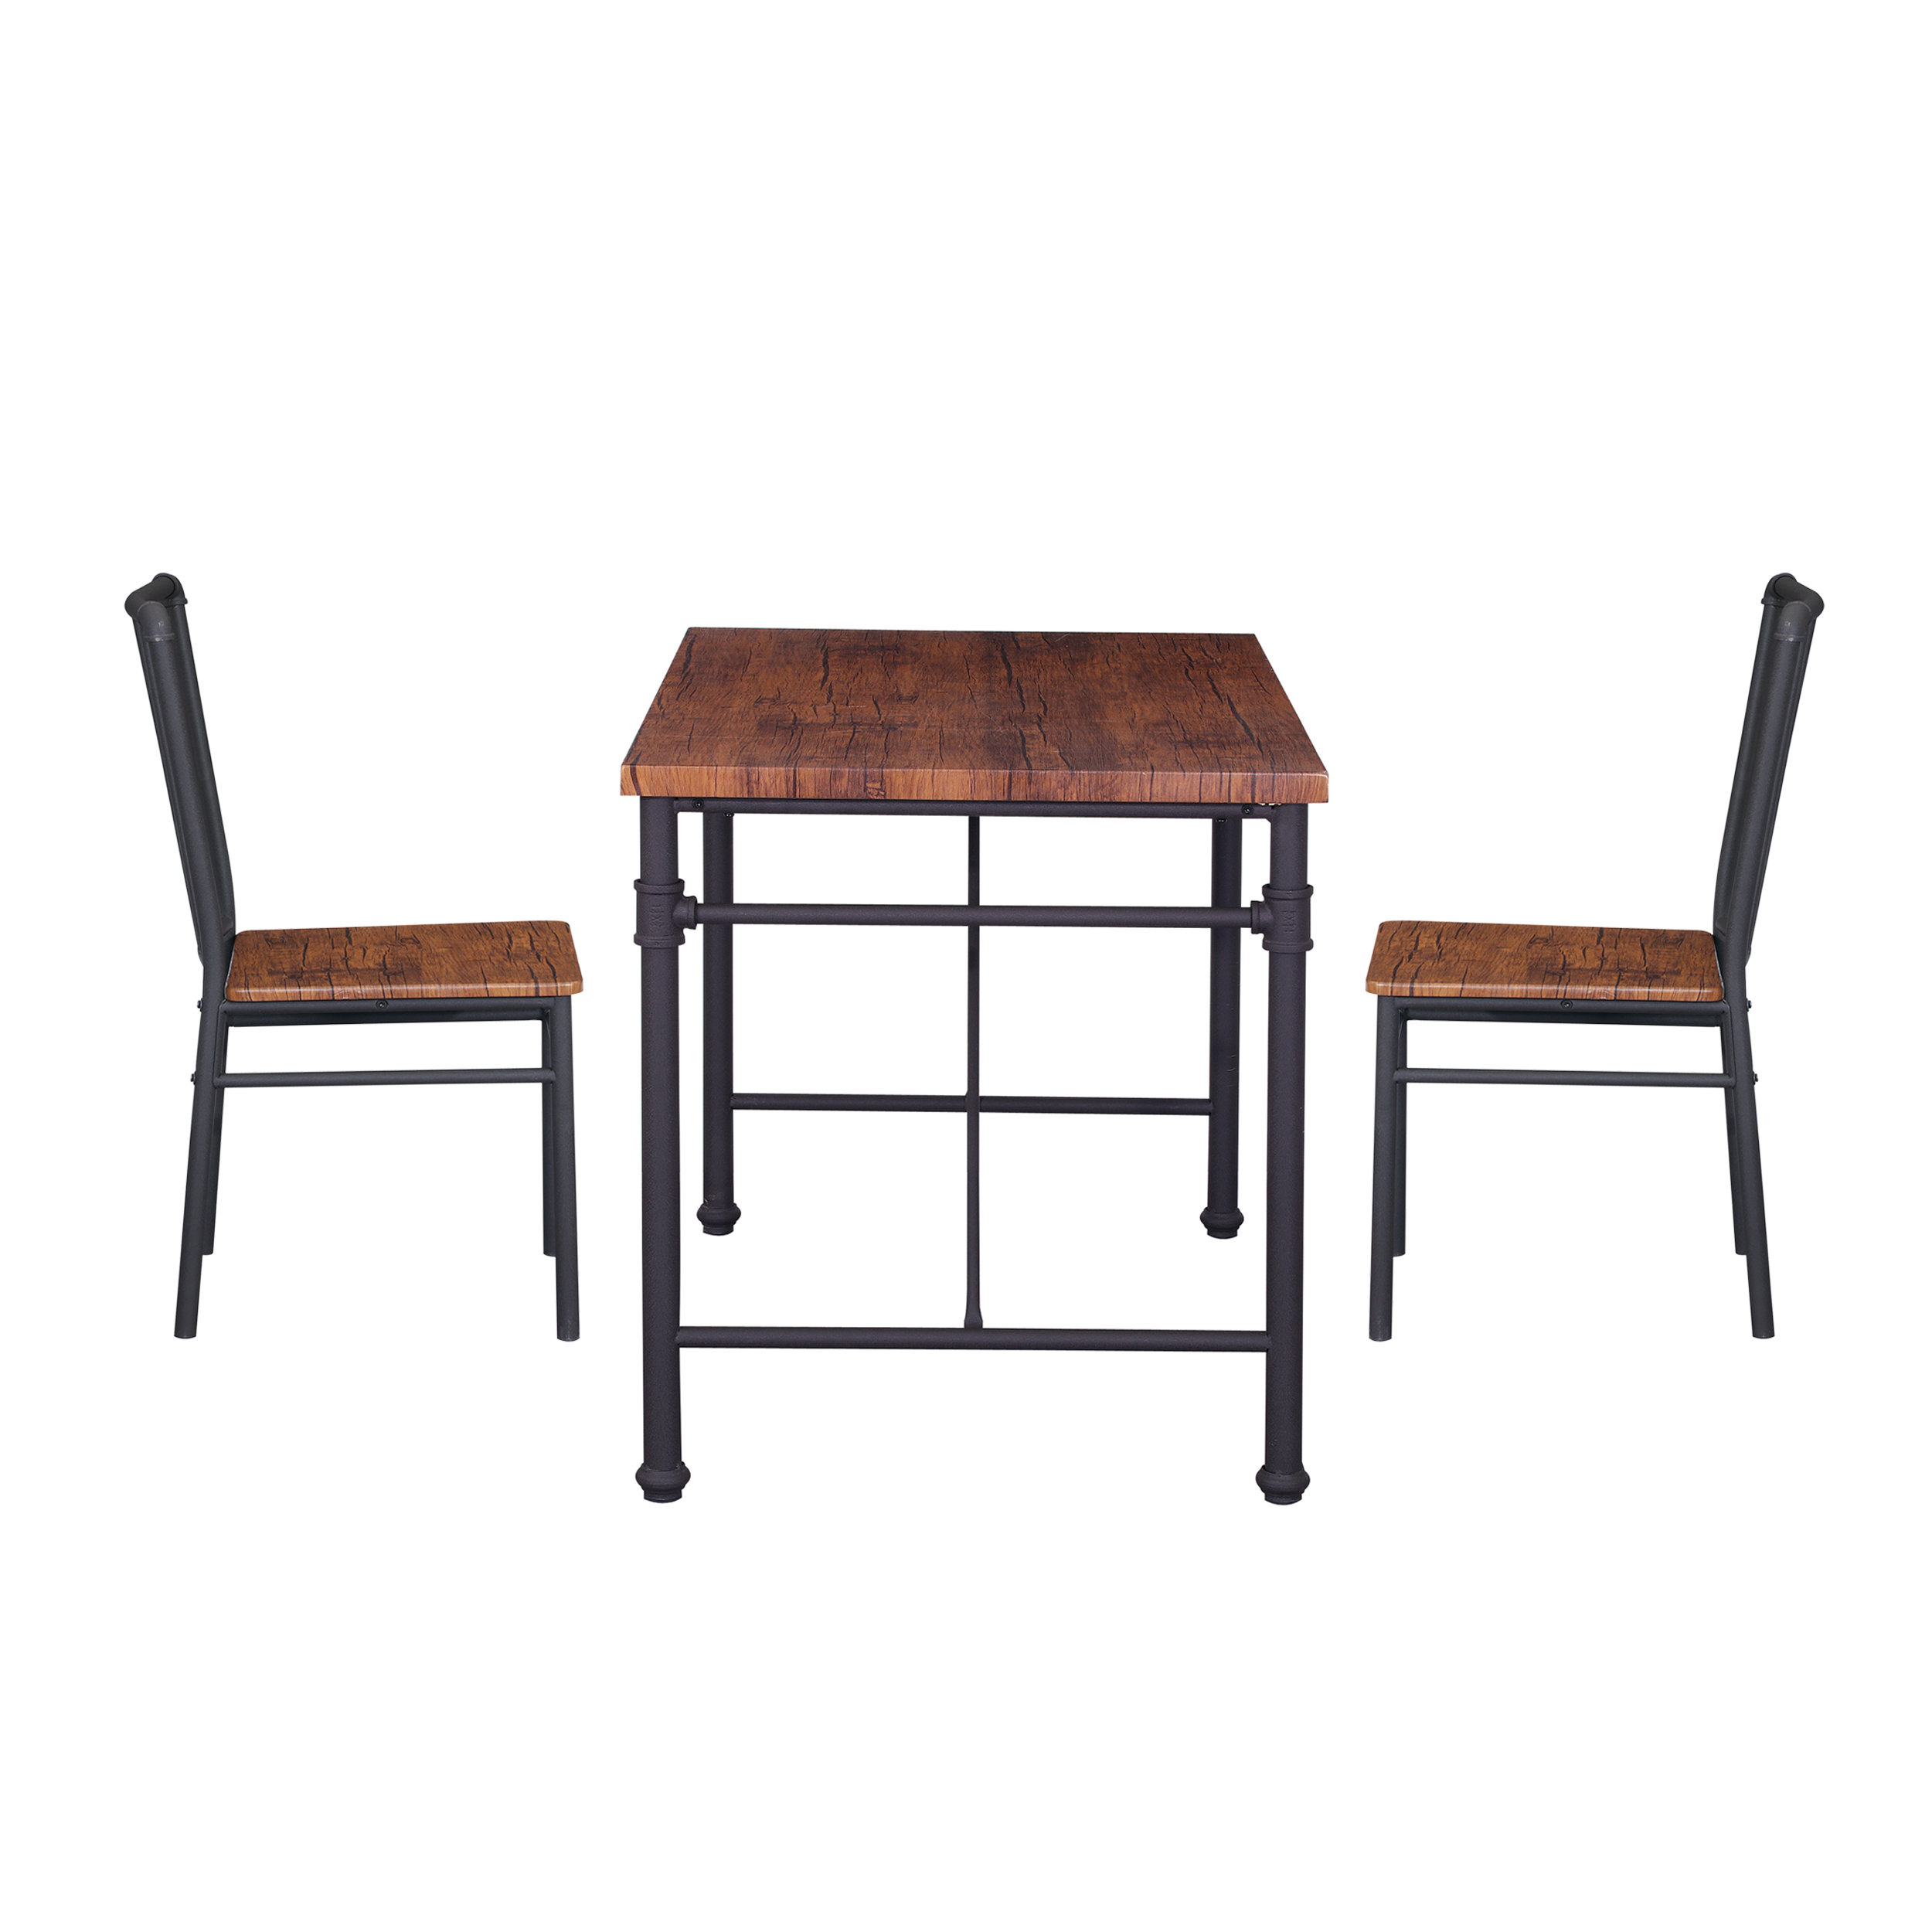 Maloney 3 Piece Breakfast Nook Dining Sets Regarding Most Up To Date Williston Forge Patterson 3 Piece Chairs Set (View 7 of 20)